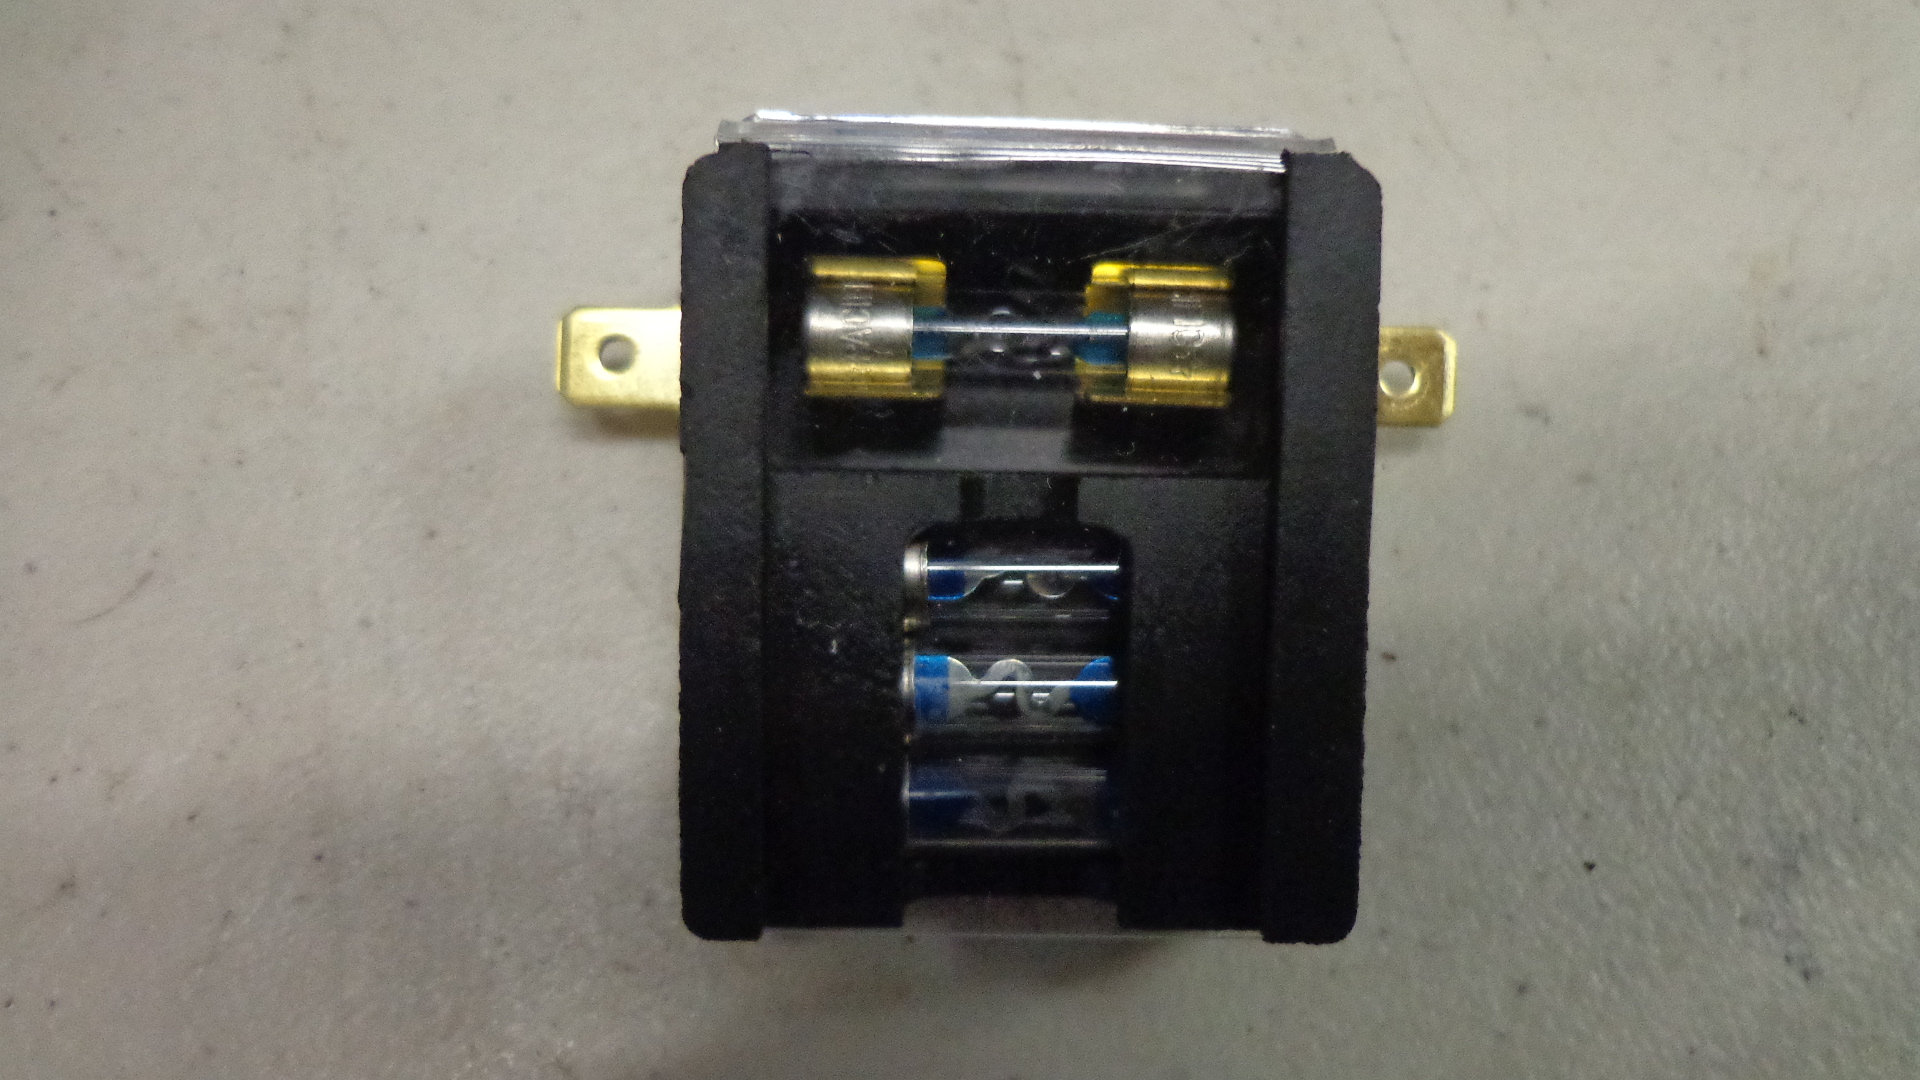 hight resolution of here we have a genuine honda fuse box and holder this is brand new and ready to use on your k0 k1 and k2 cb750 honda s o h c model